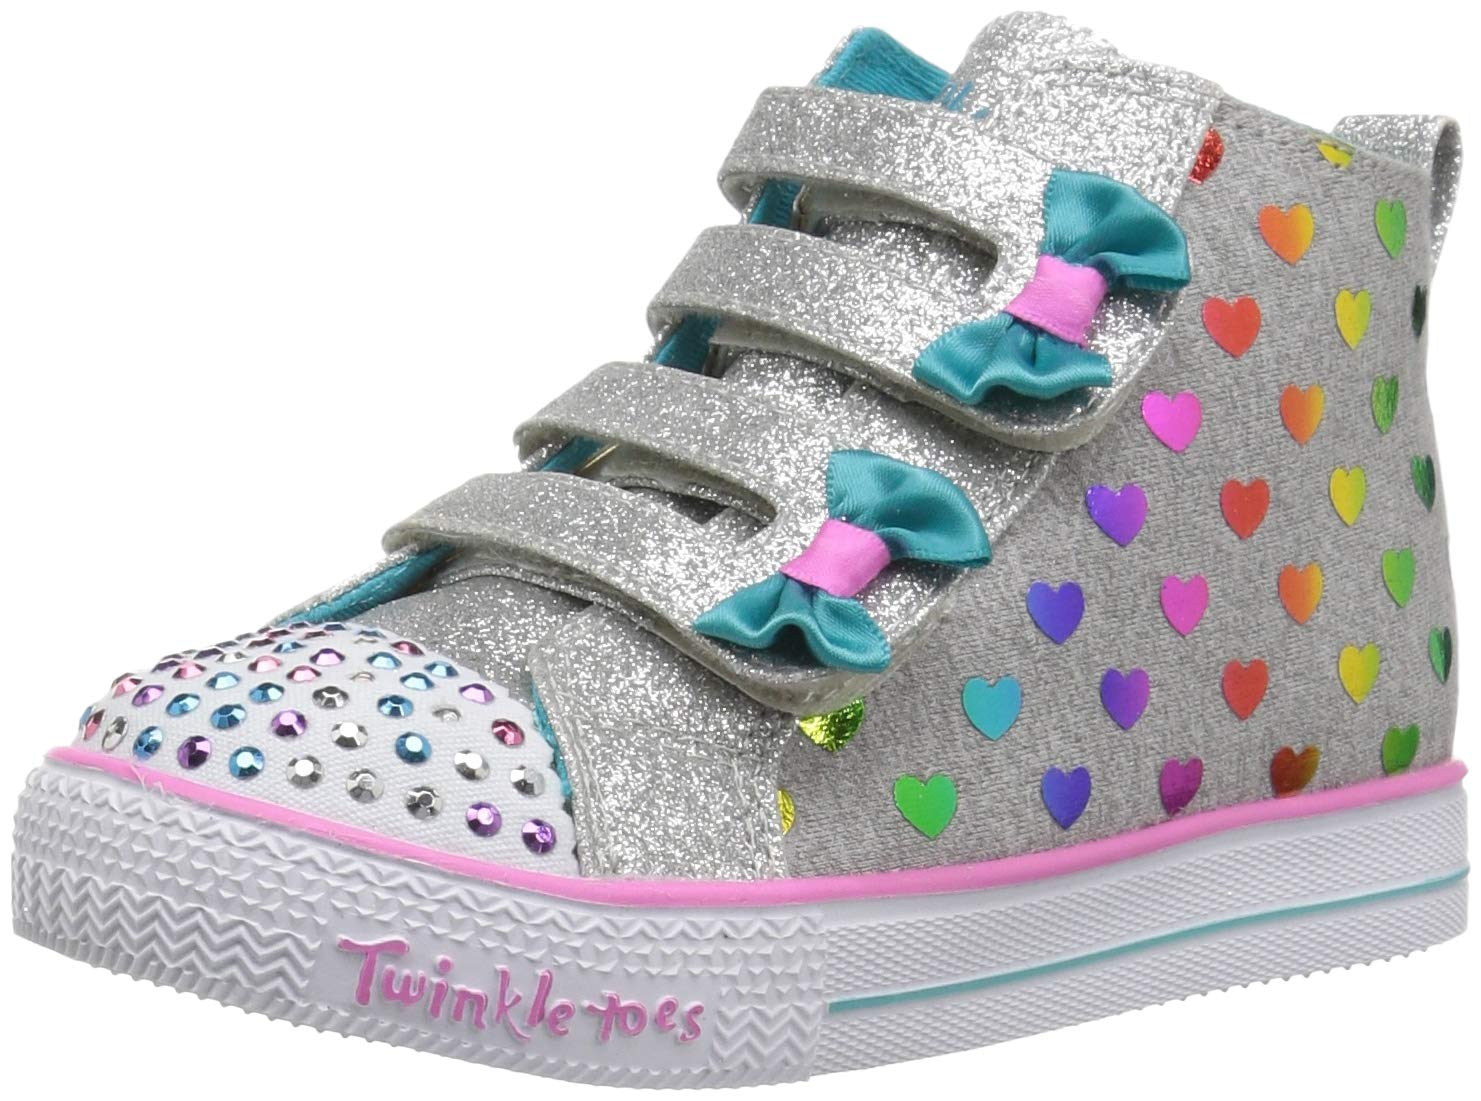 Skechers Kids Girls' Shuffle Lite-Fancy Flutters Sneaker, Gray/Multi, 12 Medium US Little Kid